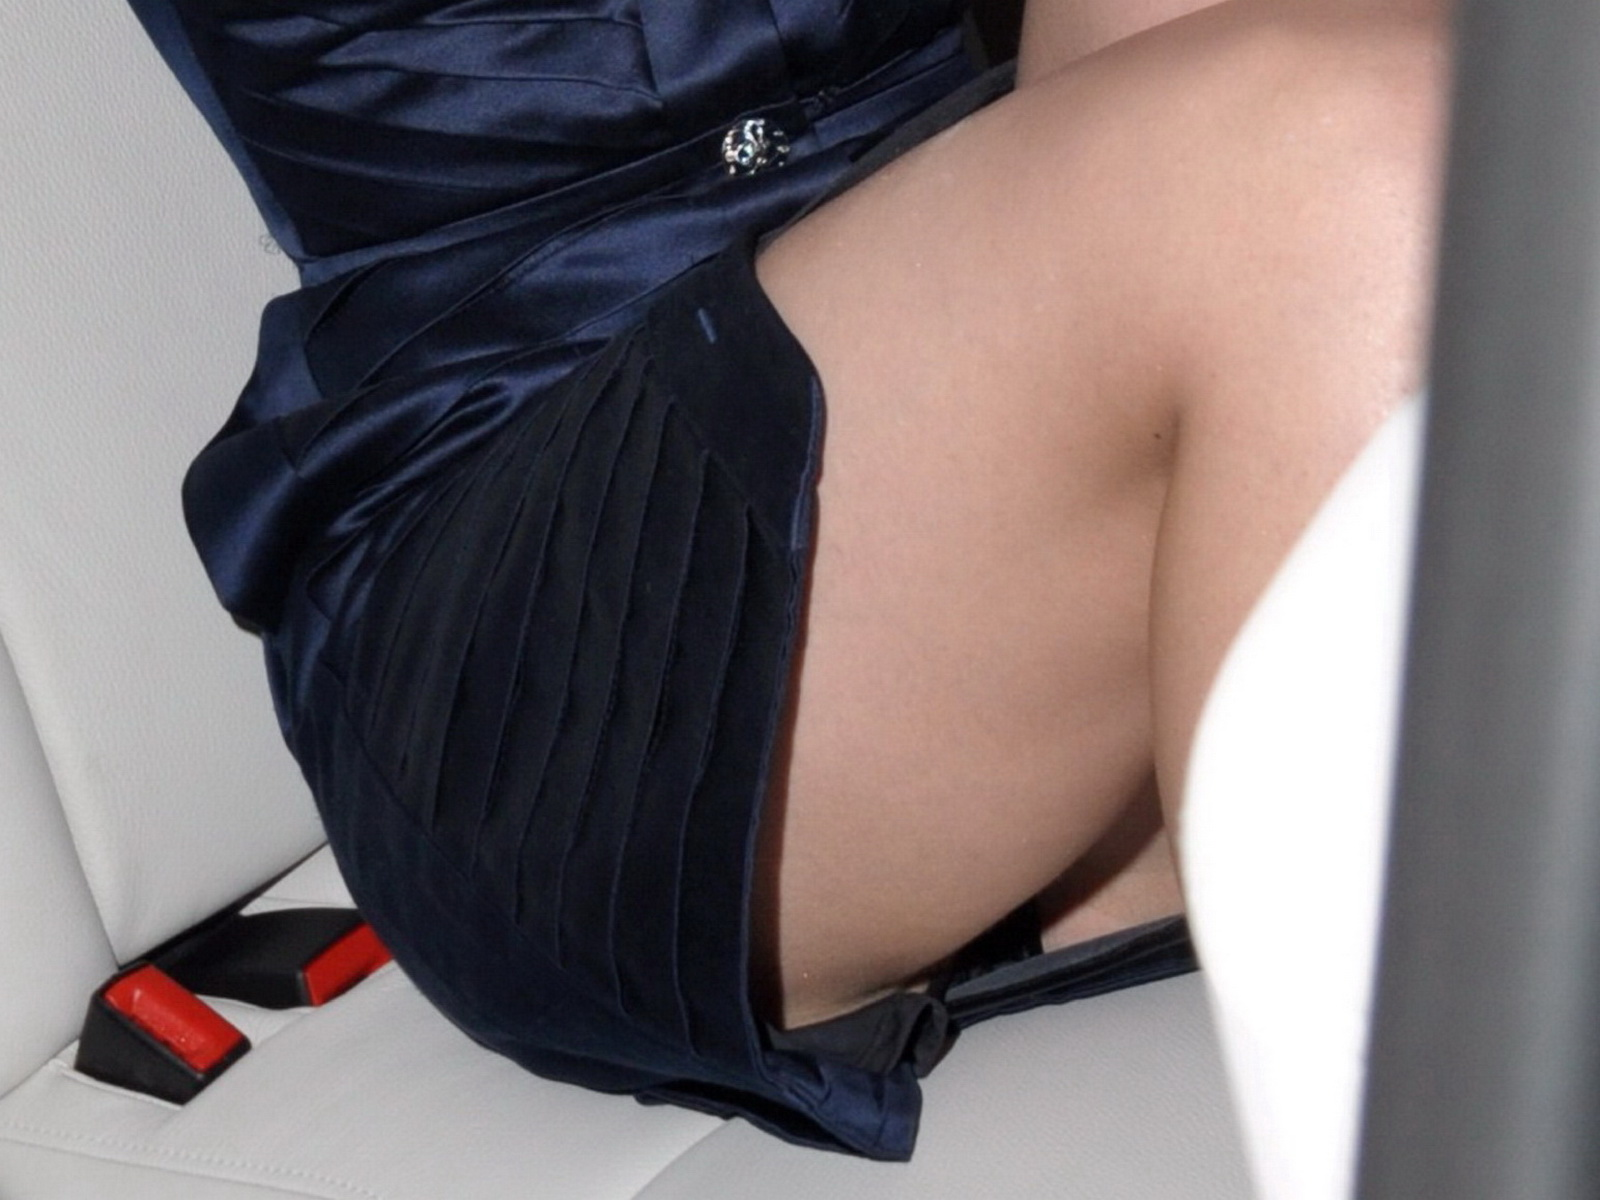 Always emma watson upskirt see through panties flavor could